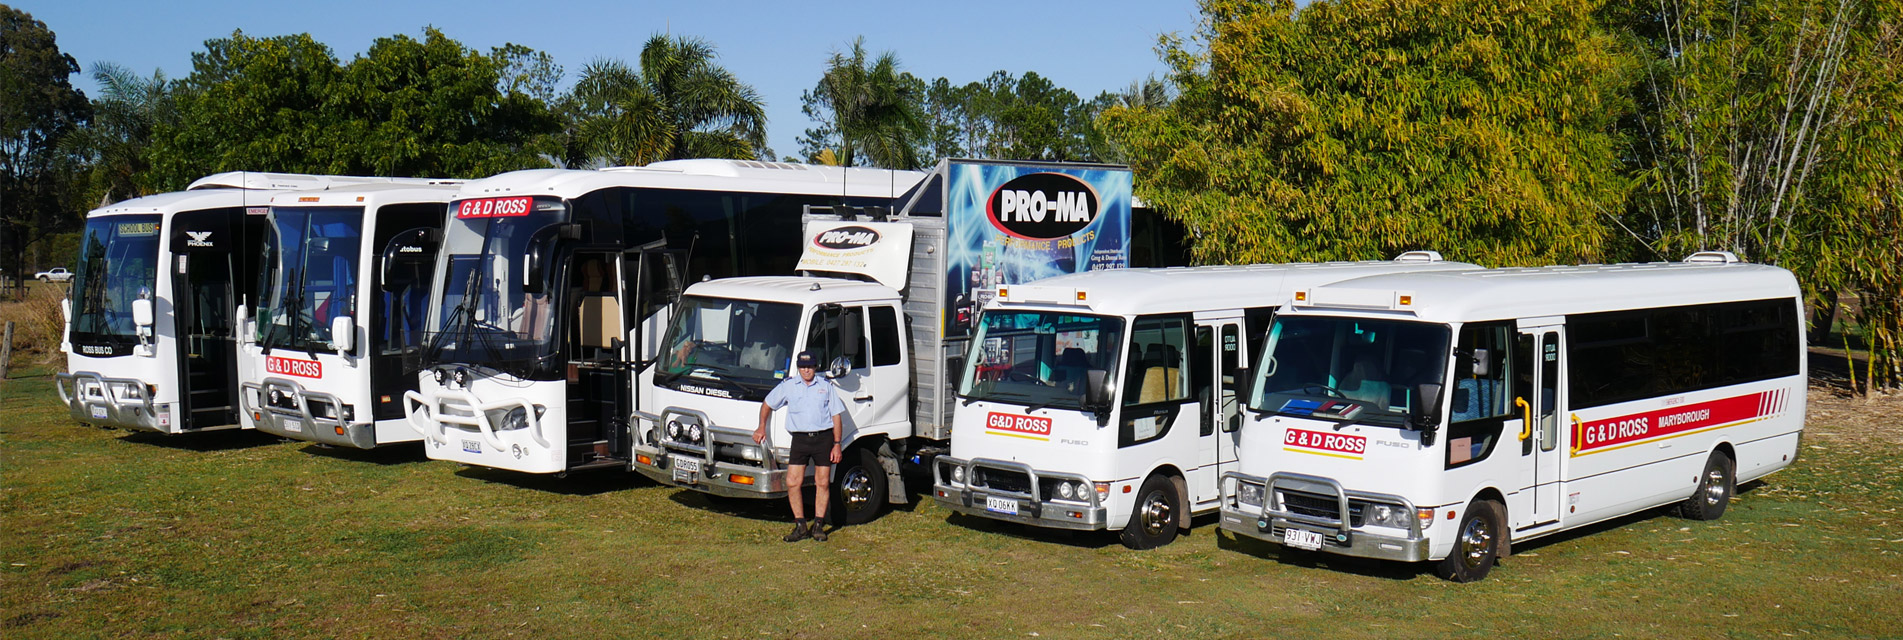 G&D Bus Tour Vehicles — Tours in Maryborough QLD